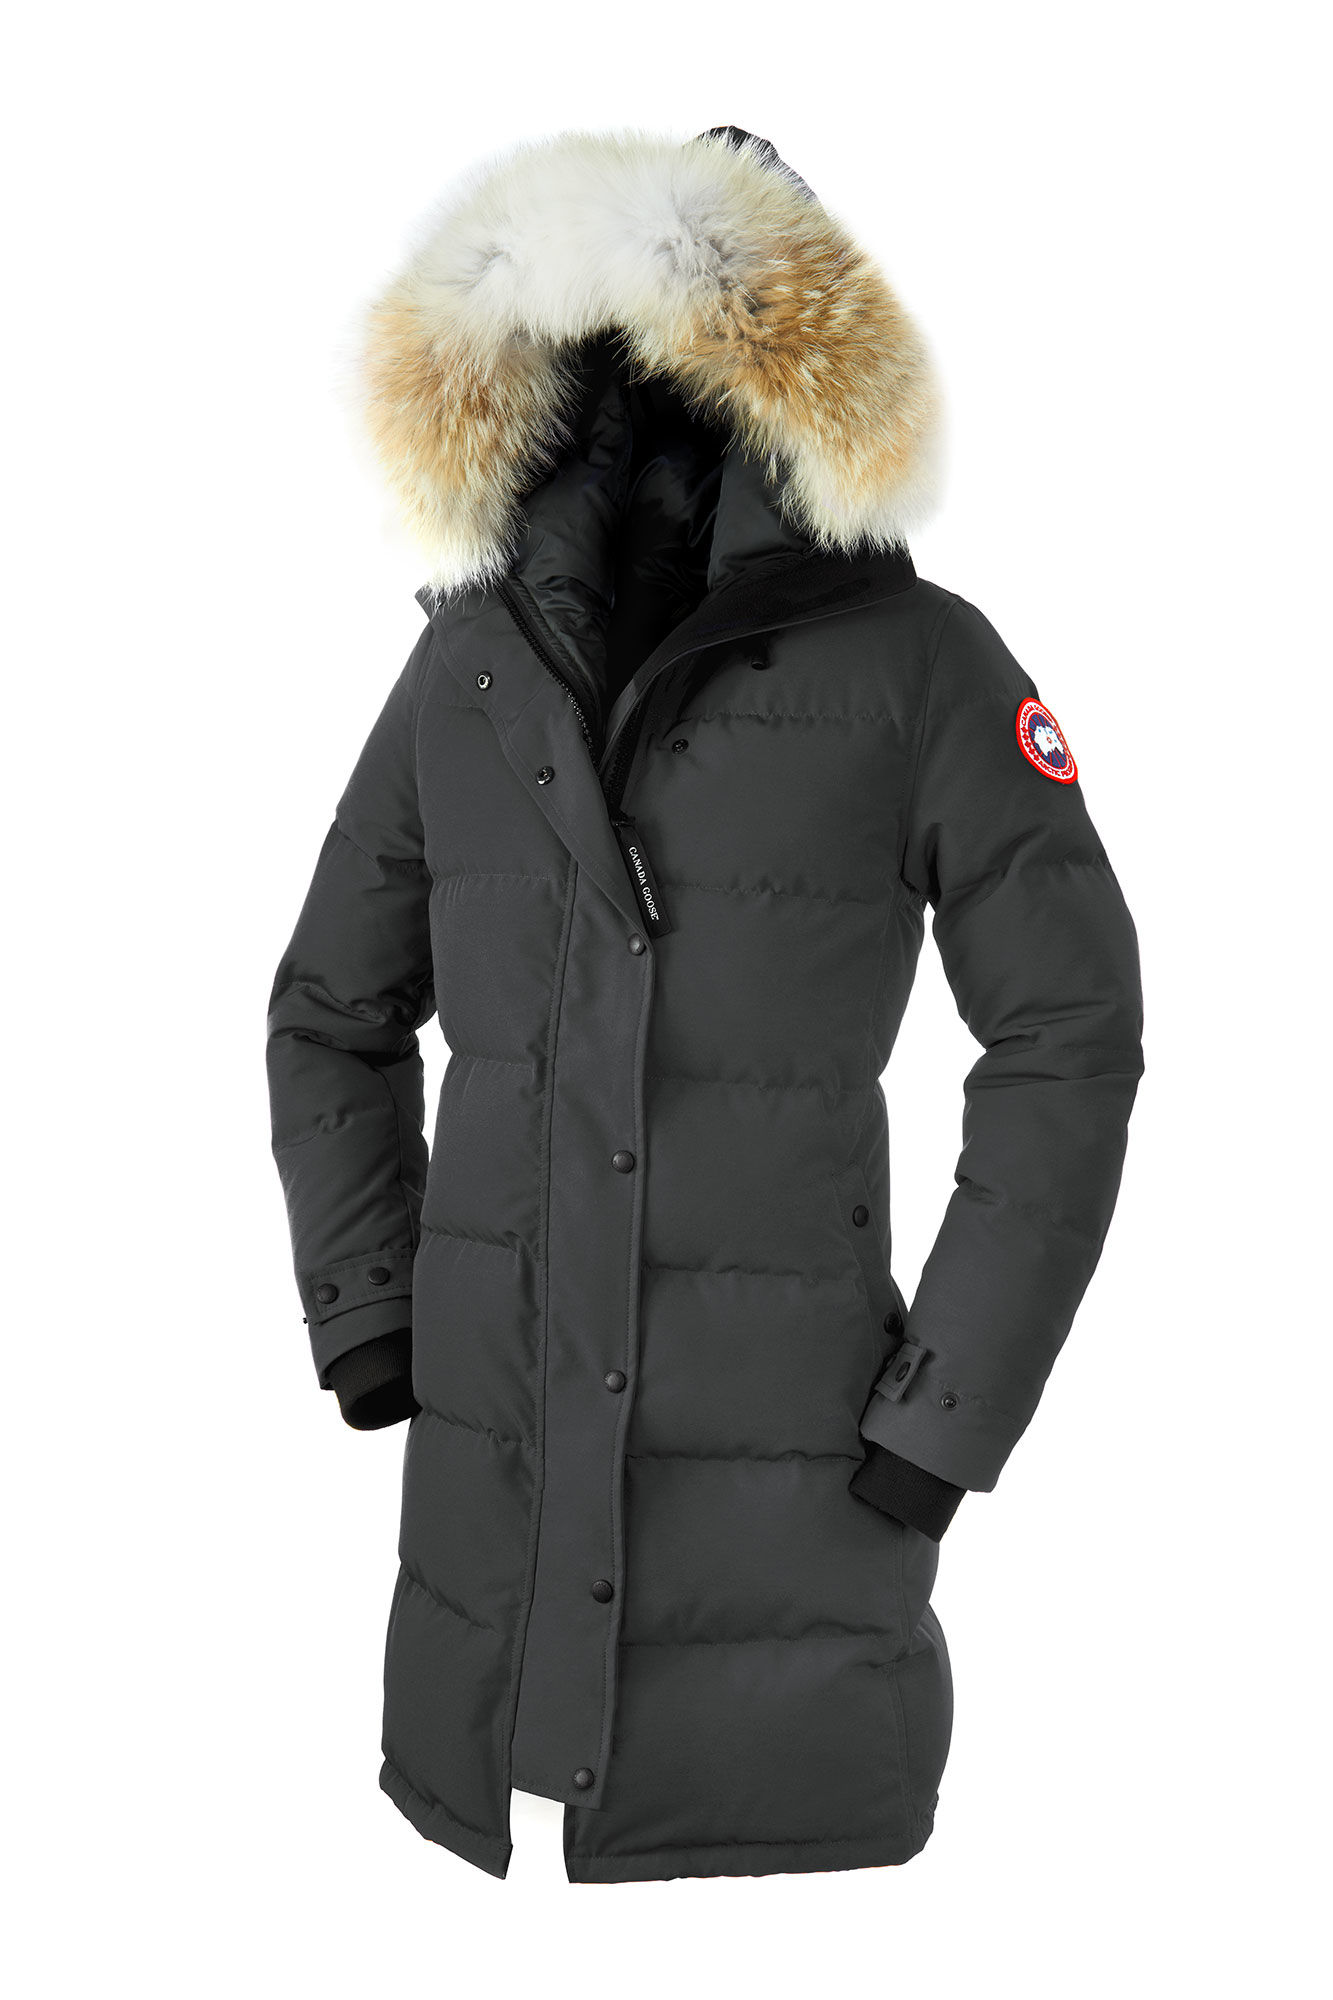 canada goose jackets worth the money